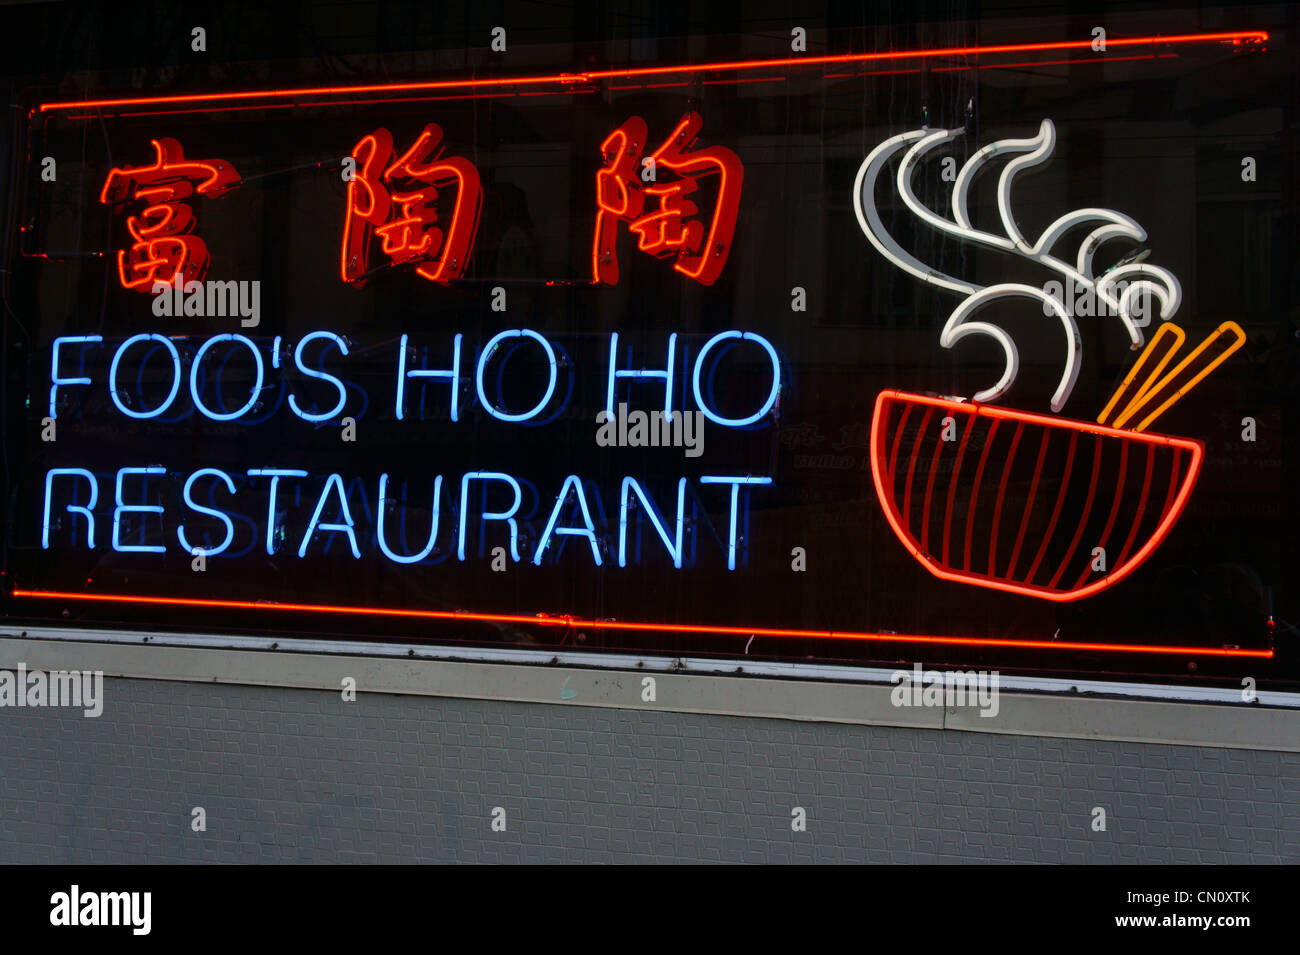 Chinese Restaurant High Resolution Stock Photography And Images Alamy